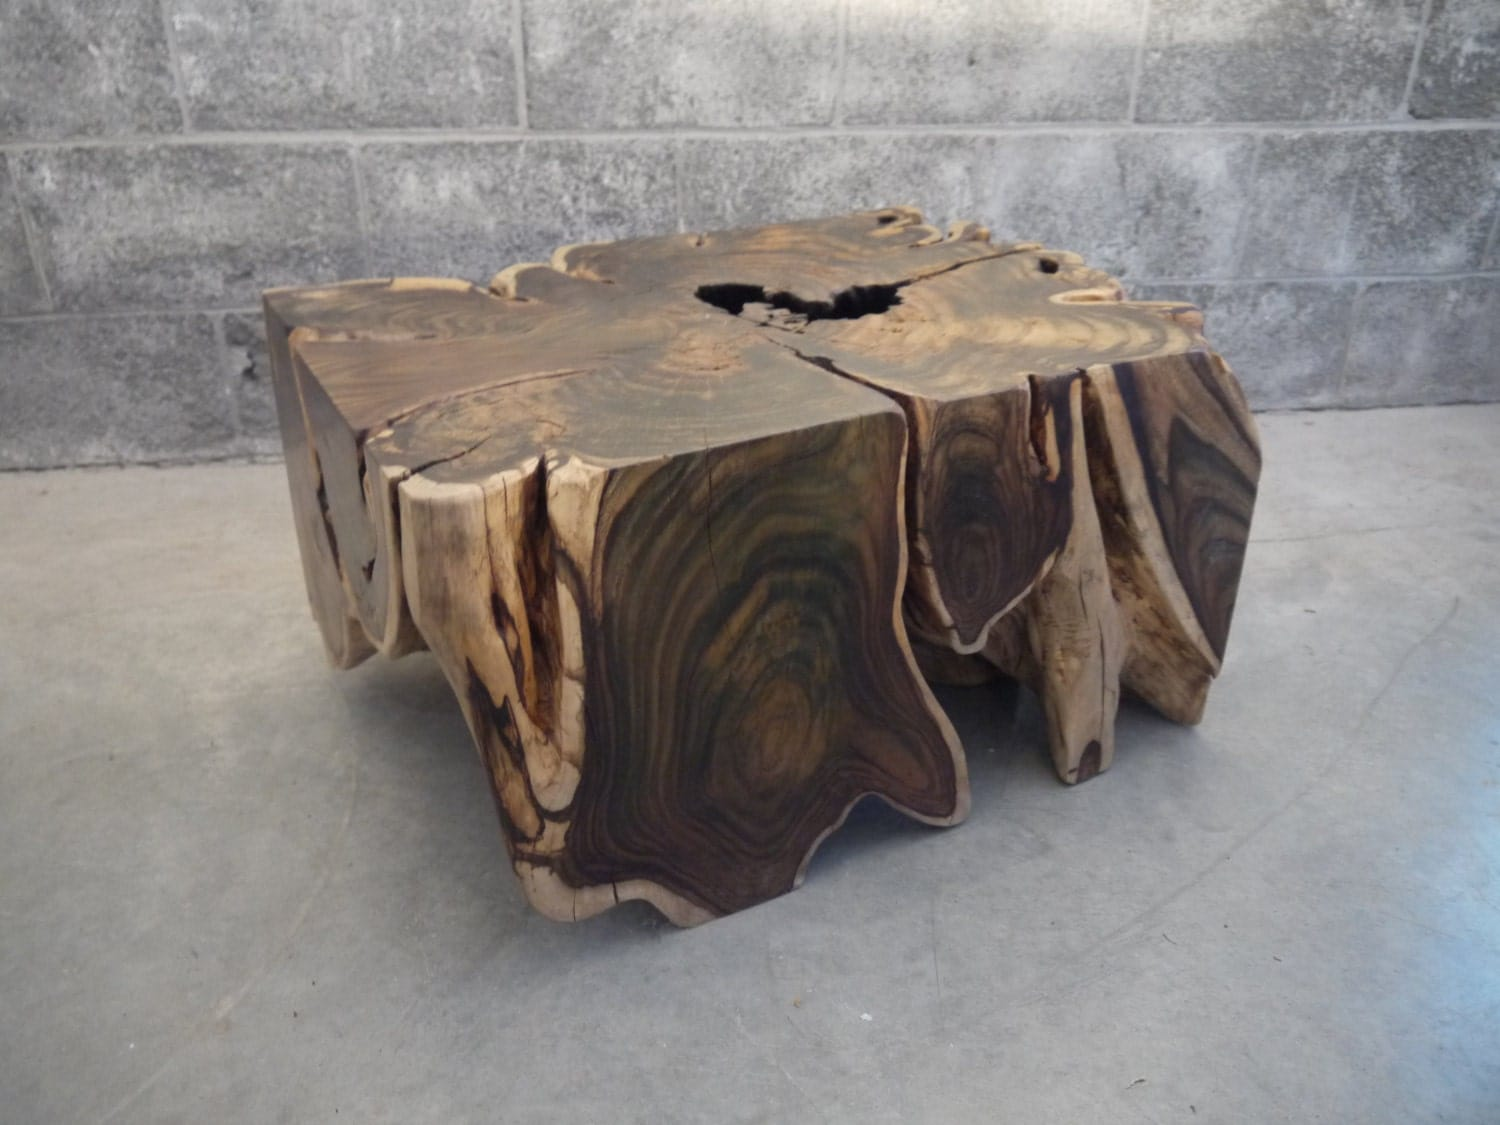 Sono wood root coffee table live edge : ilfullxfull429164863lgbr from www.etsy.com size 1500 x 1125 jpeg 245kB